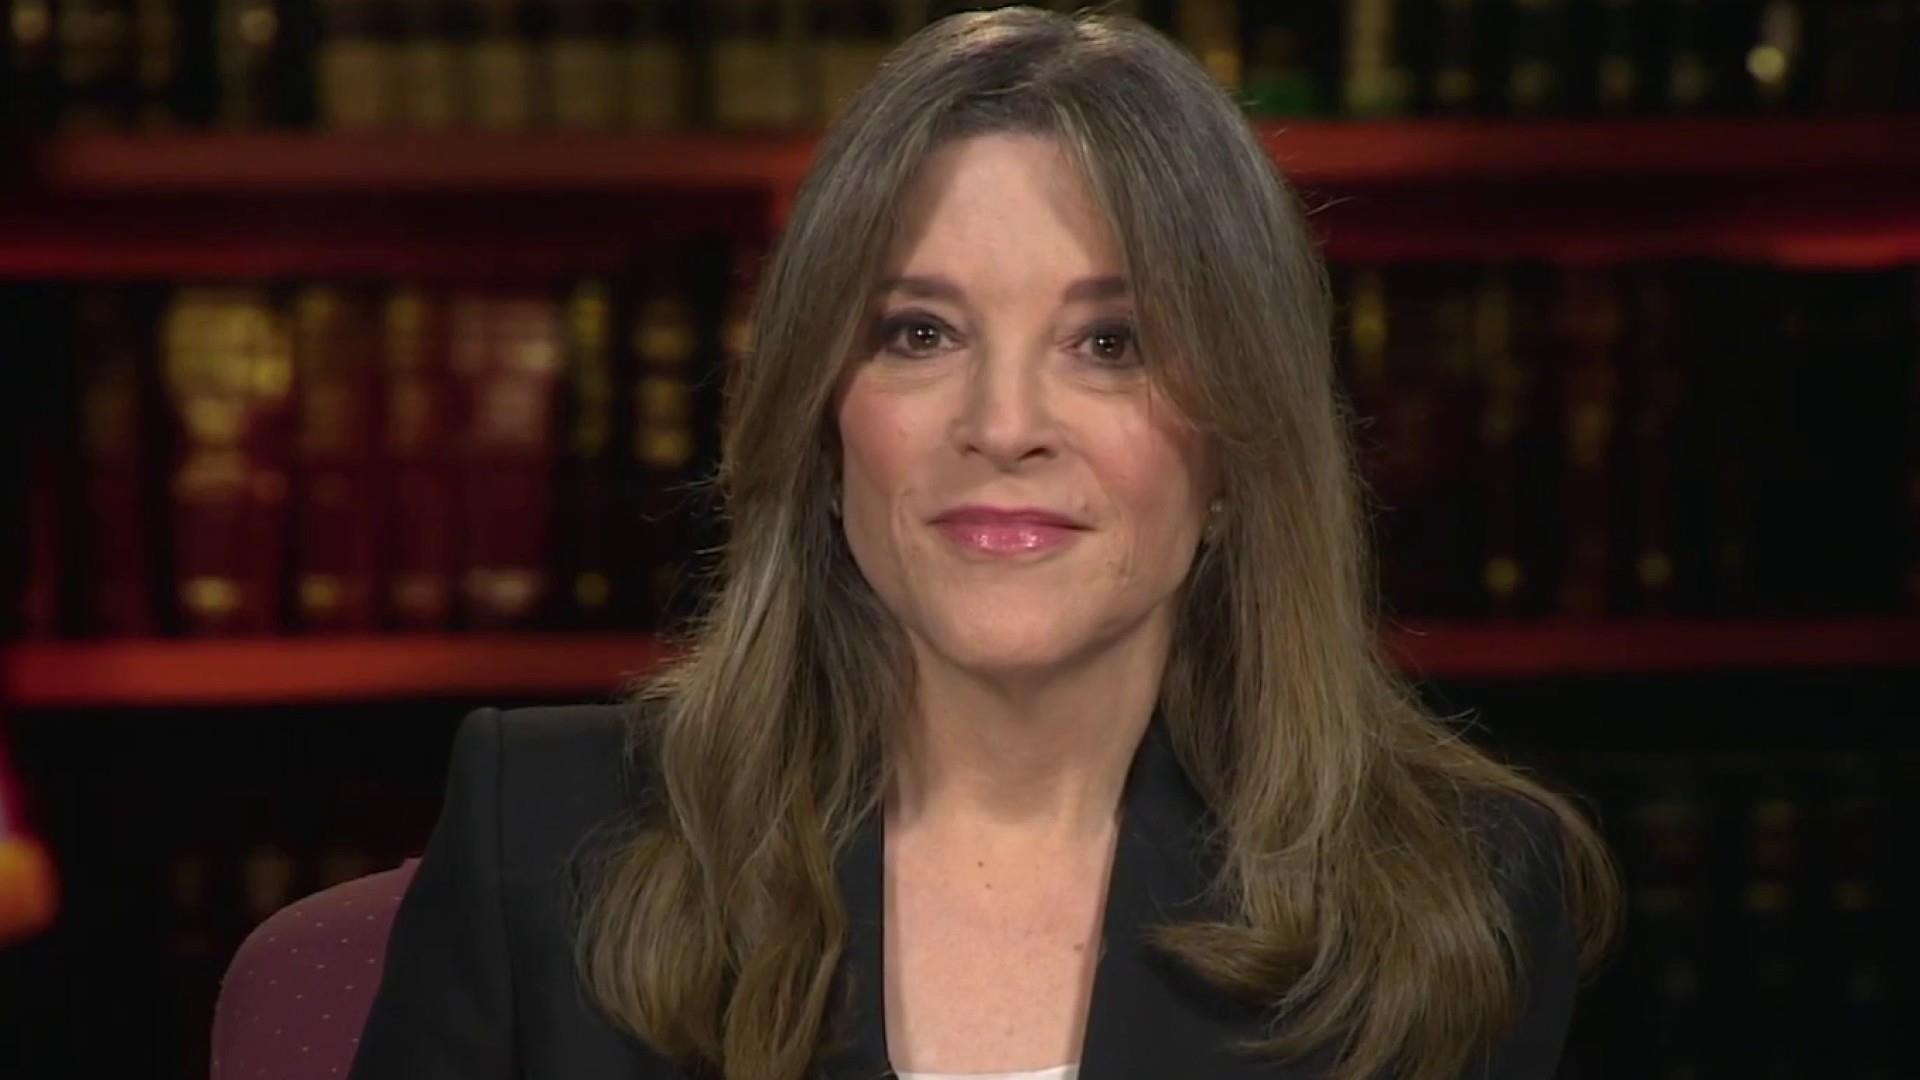 Author Marianne Williamson on why she's running for president